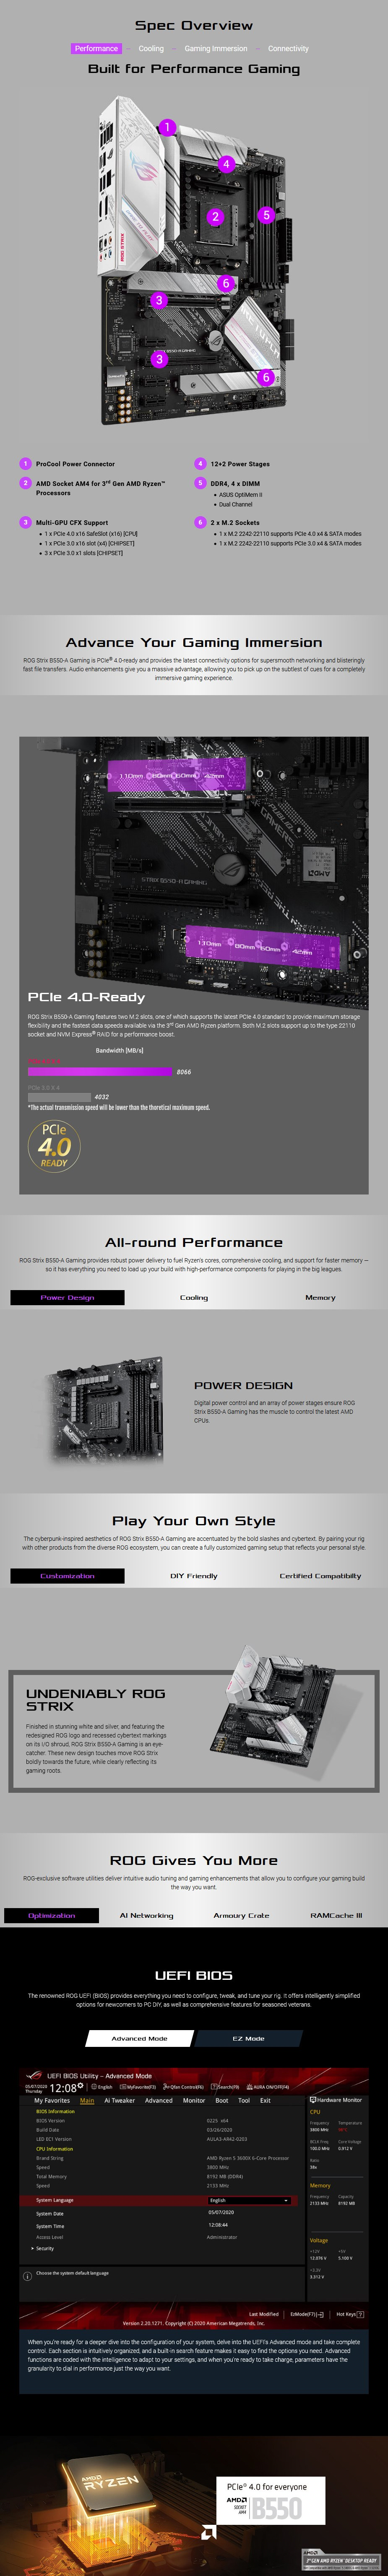 ASUS ROG STRIX B550-A GAMING AM4 ATX Motherboard - Overview 1